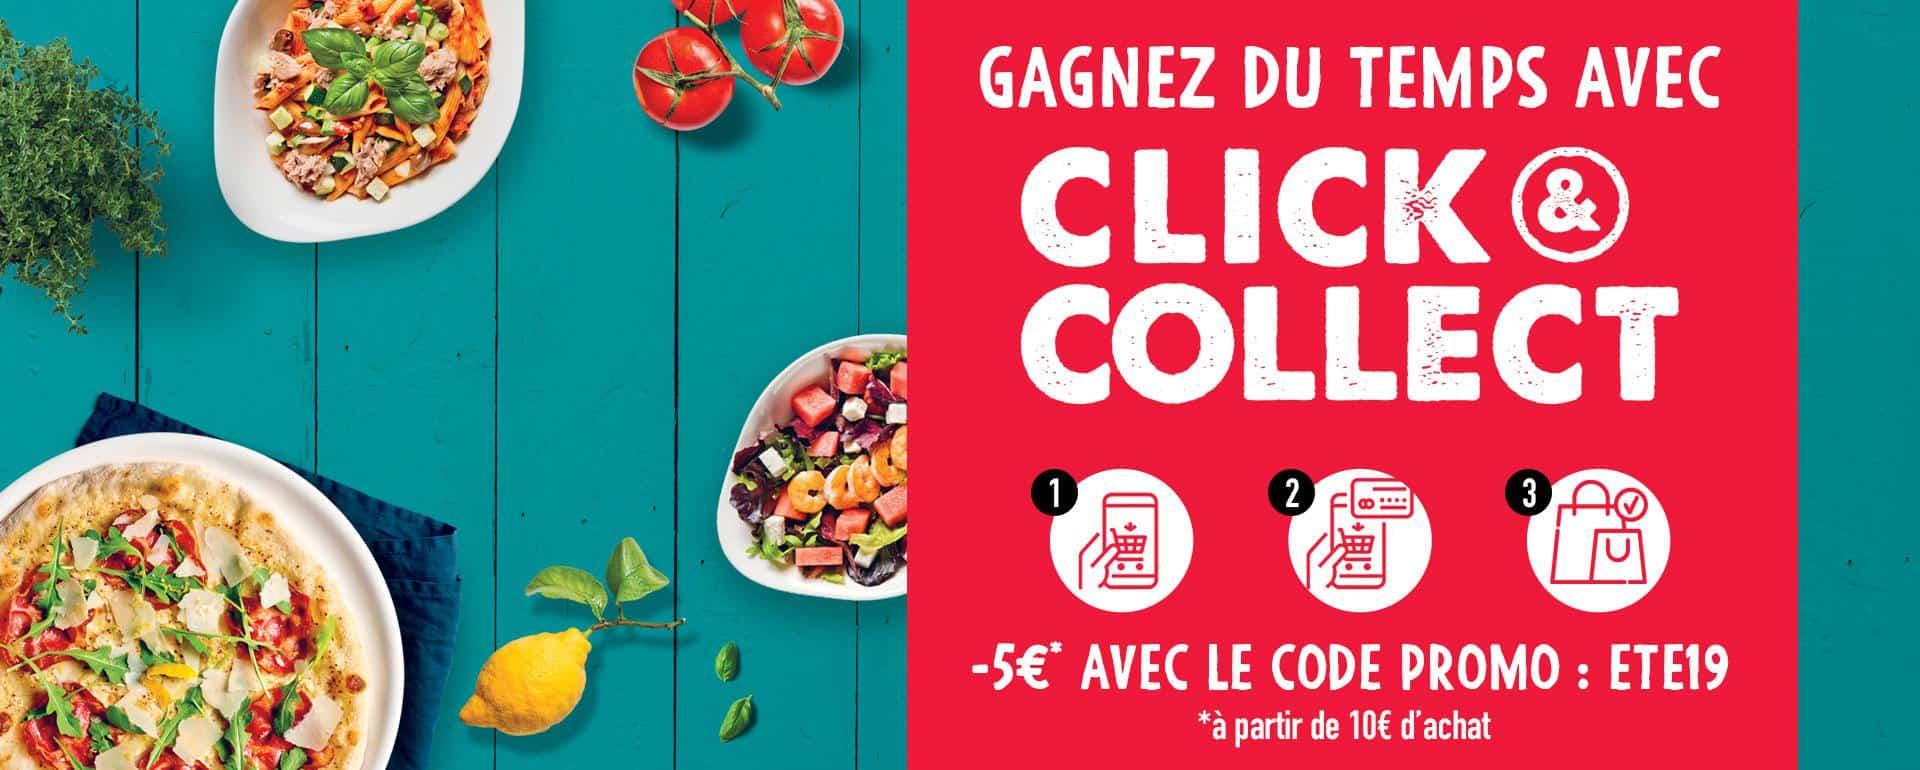 restaurant italien à emporter avec click and collect